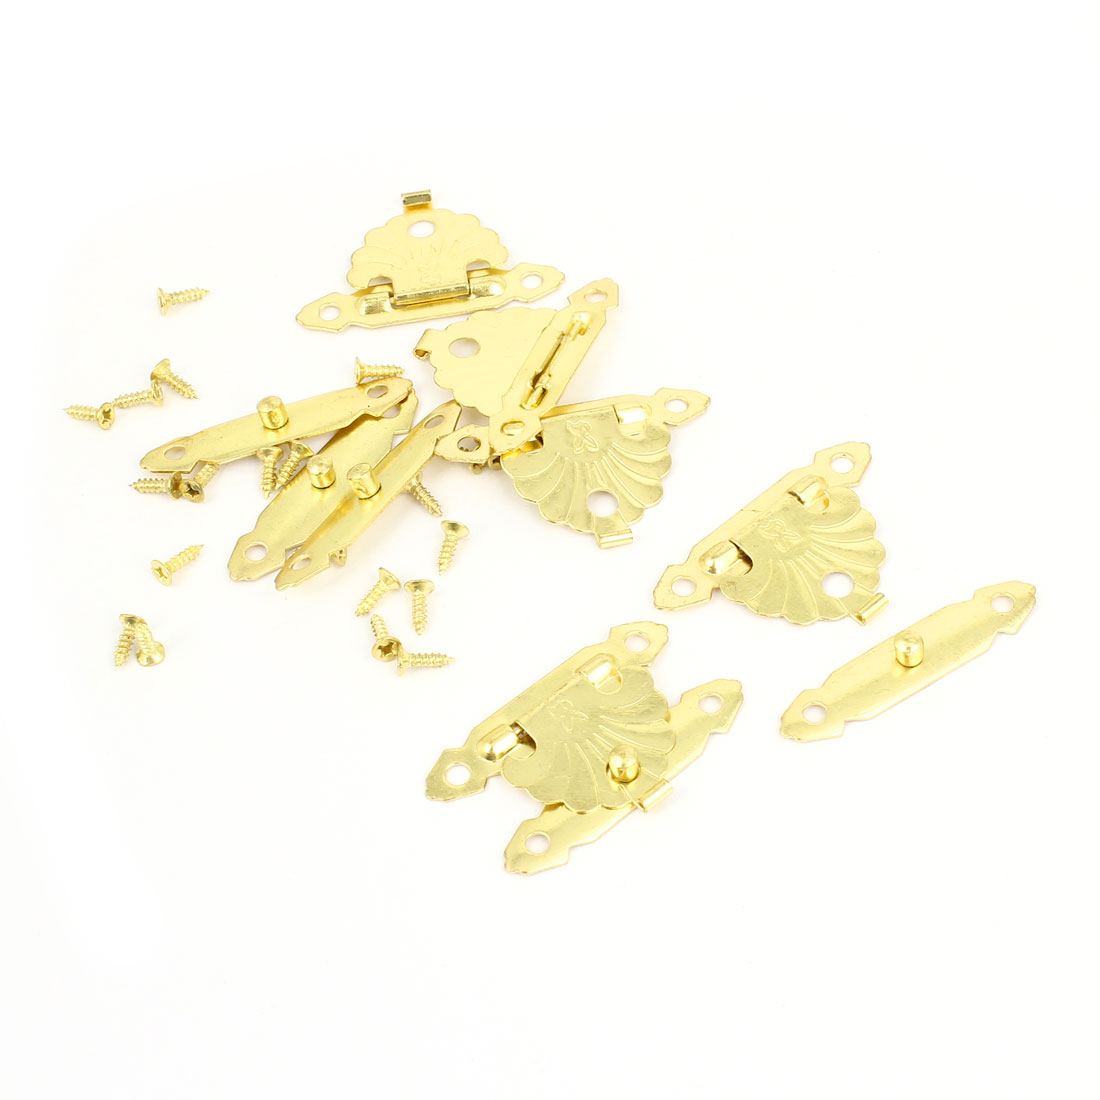 "5 Pcs Antique Wood Box Latch Sets Case Locking Hinge Gold Tone 1.5"" Long"